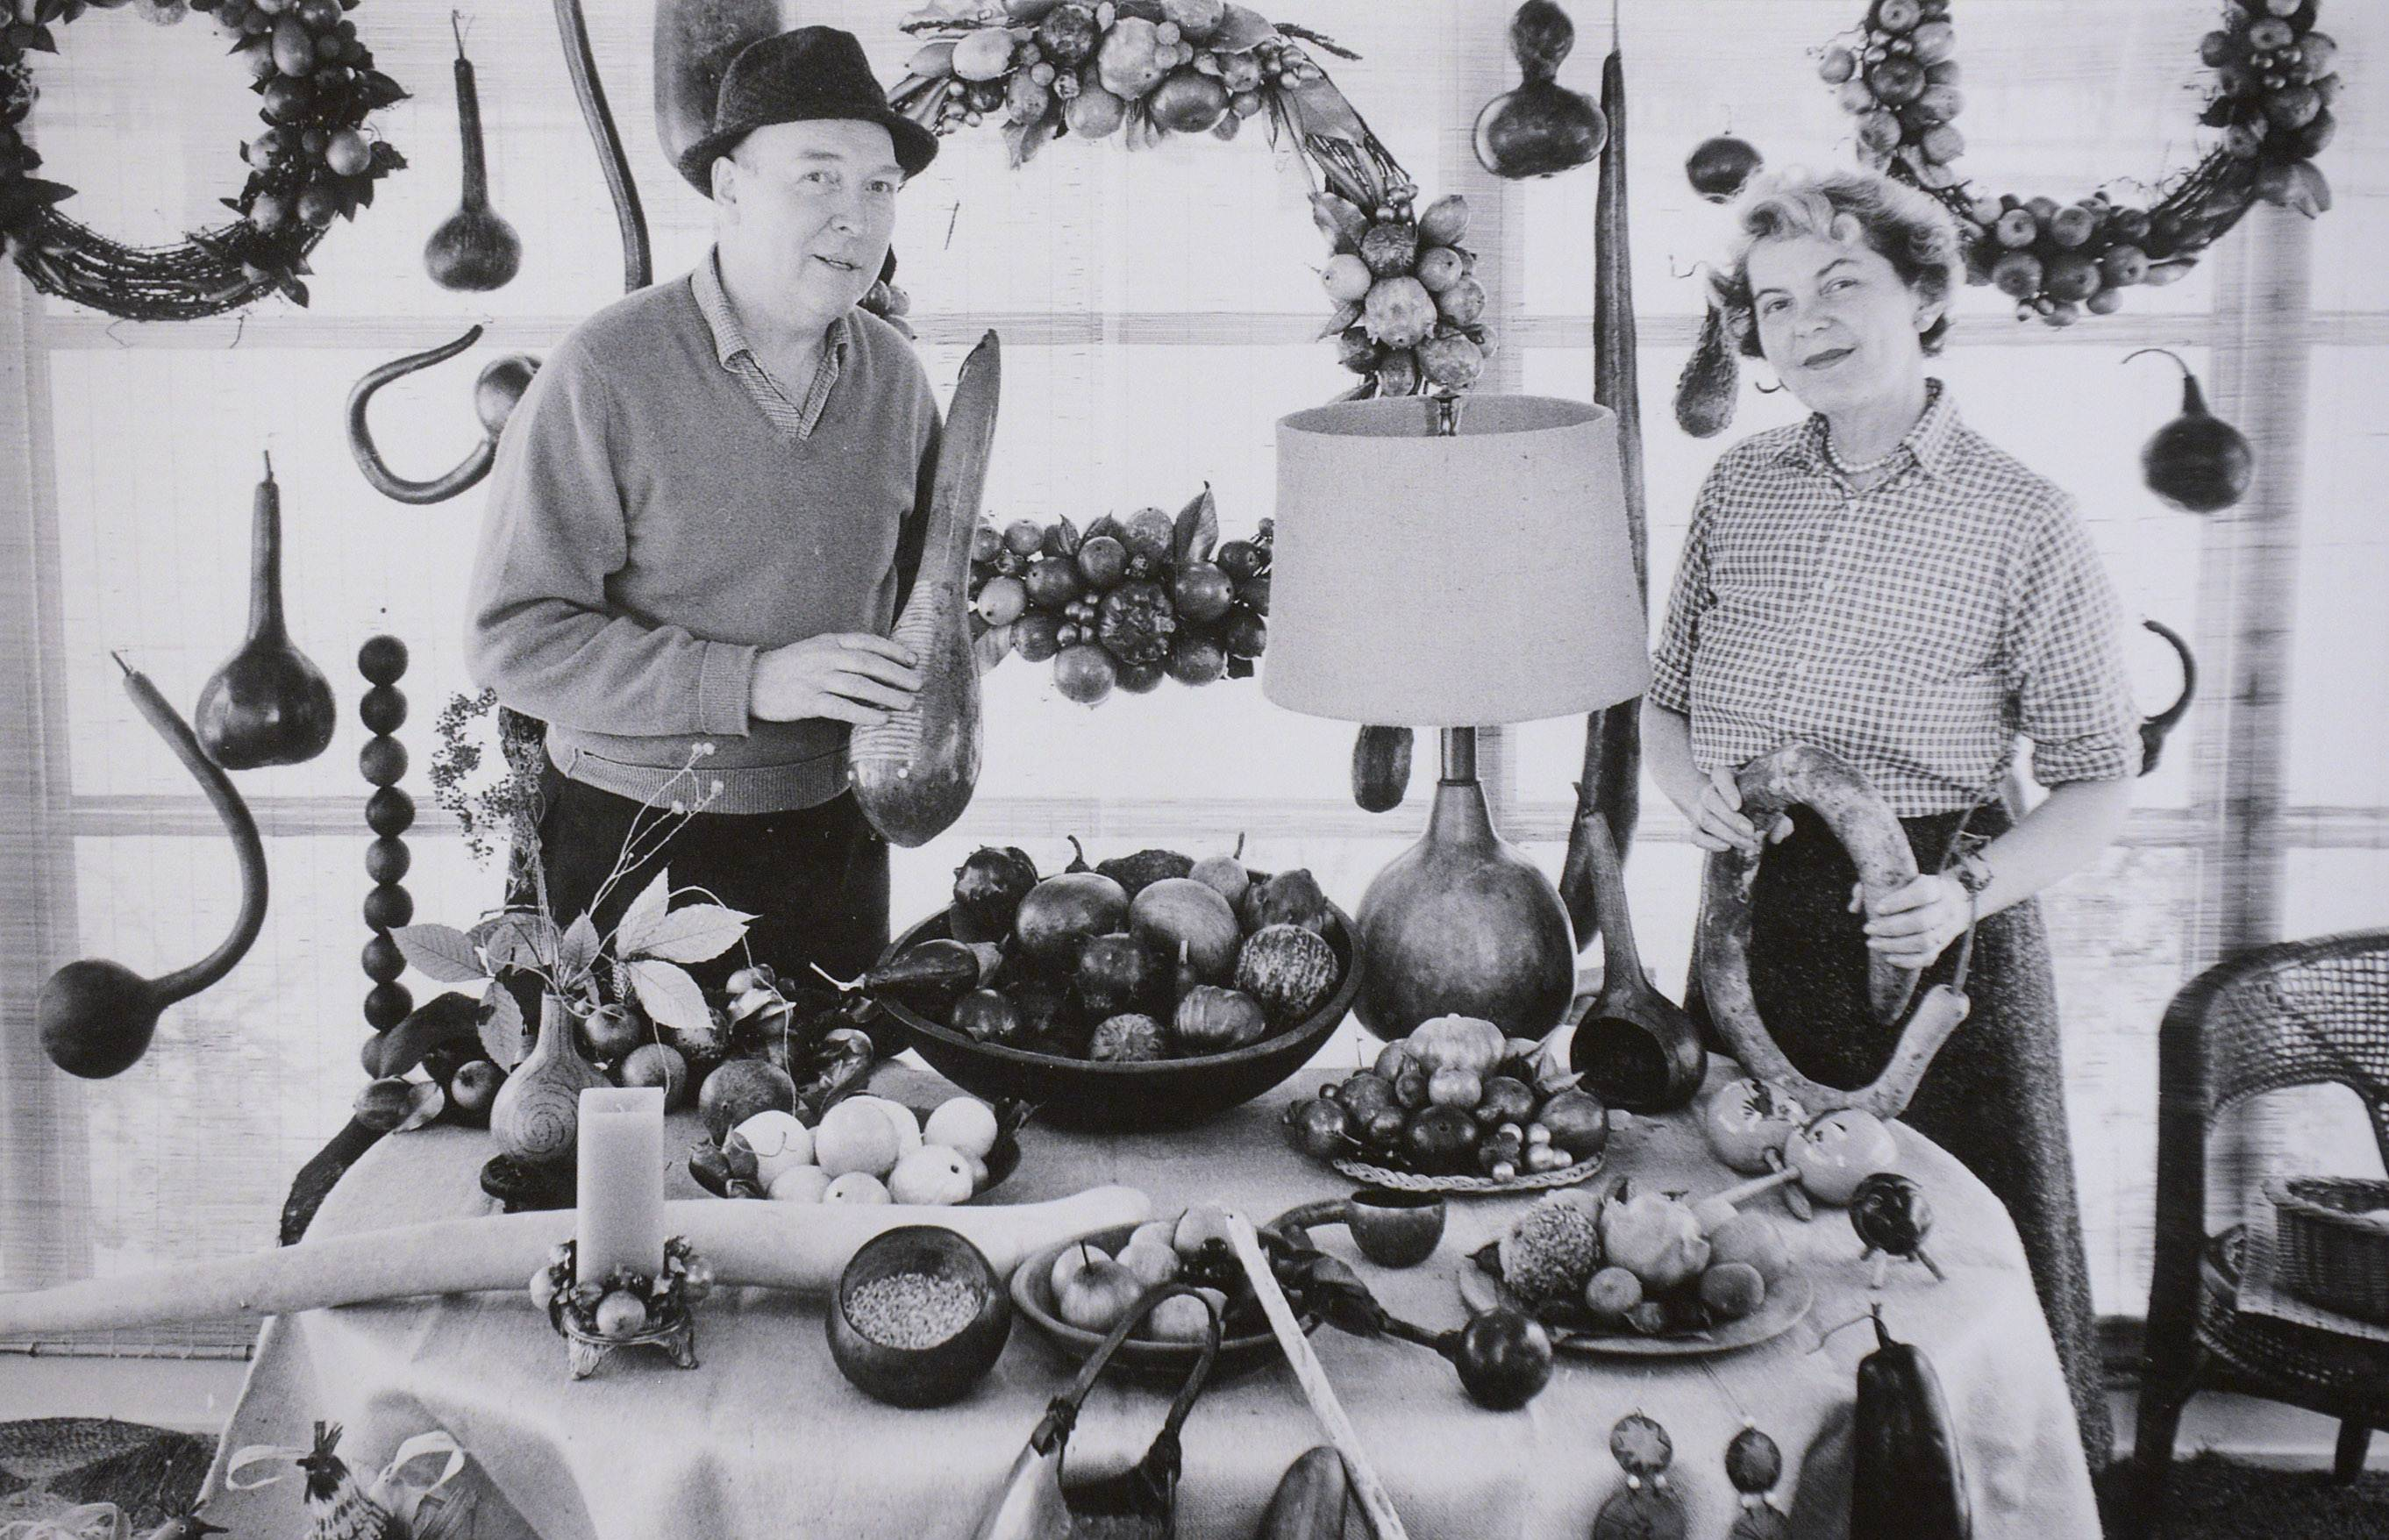 Virginia Umberger of Elgin is shown here with her late husband. Alton, and their gourd creations.